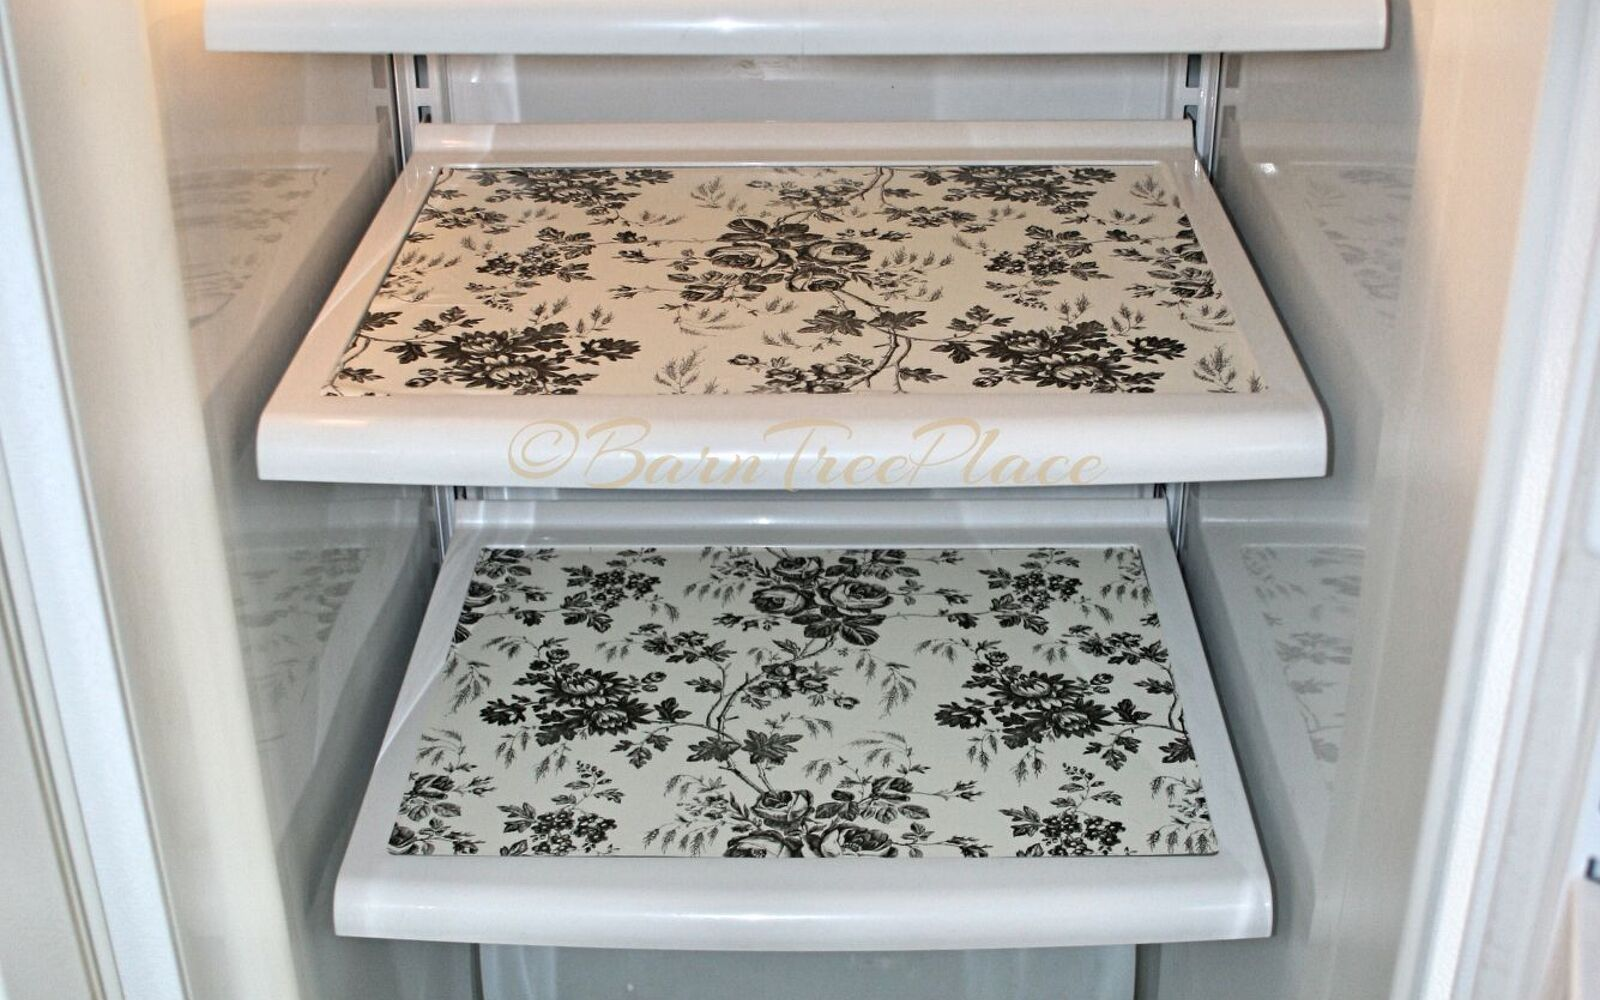 s 31 update ideas to make your kitchen look fabulous, Add a pretty pattern to your fridge shelves